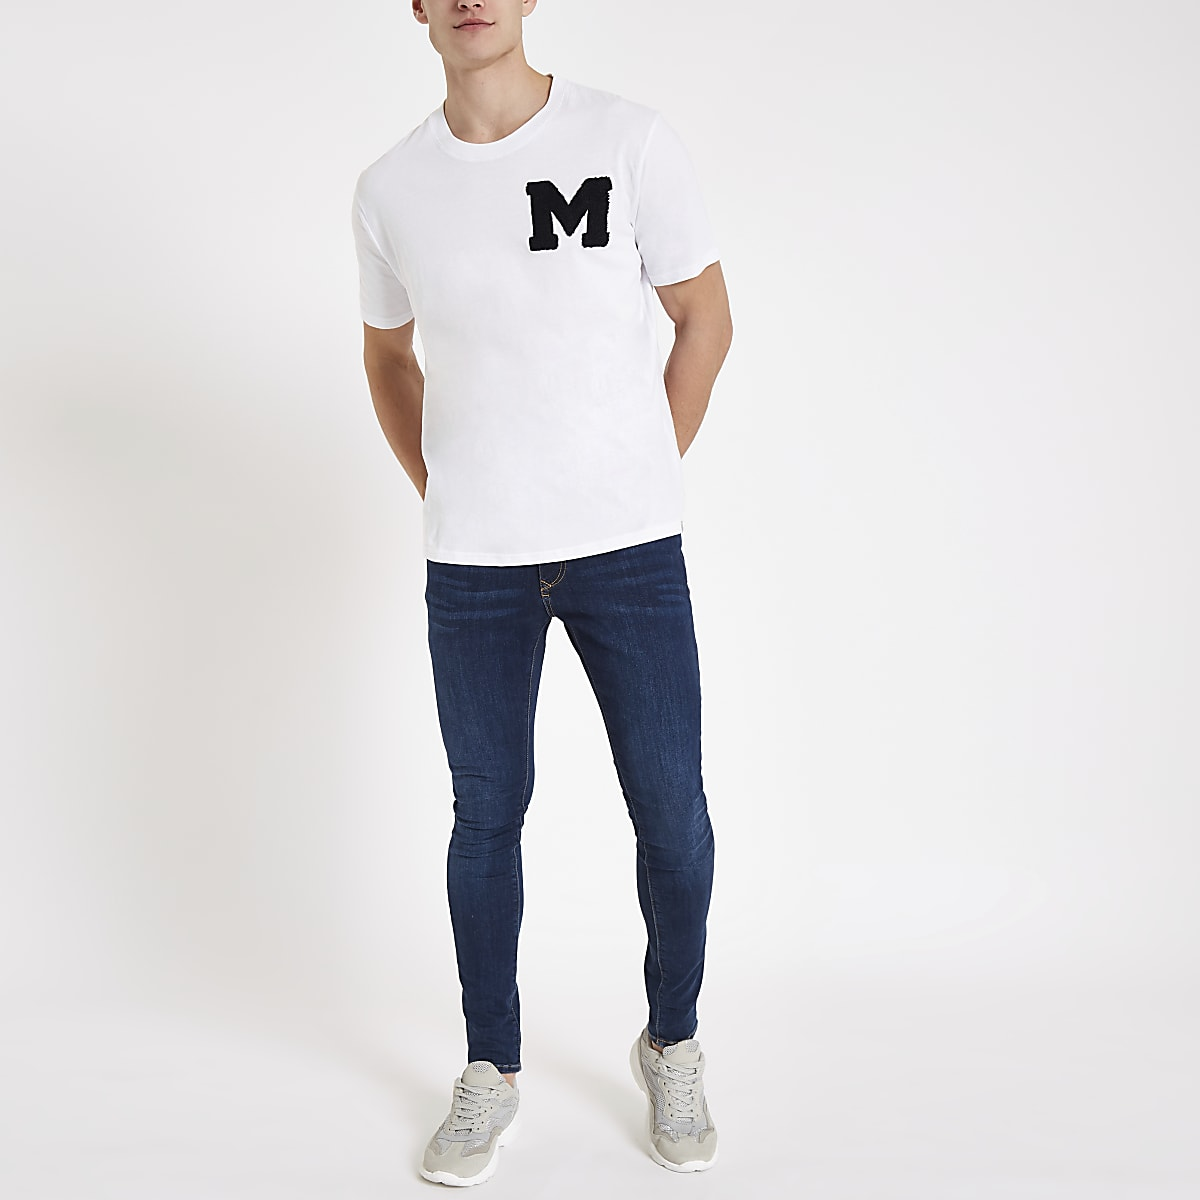 Minimum white embroidery T-shirt